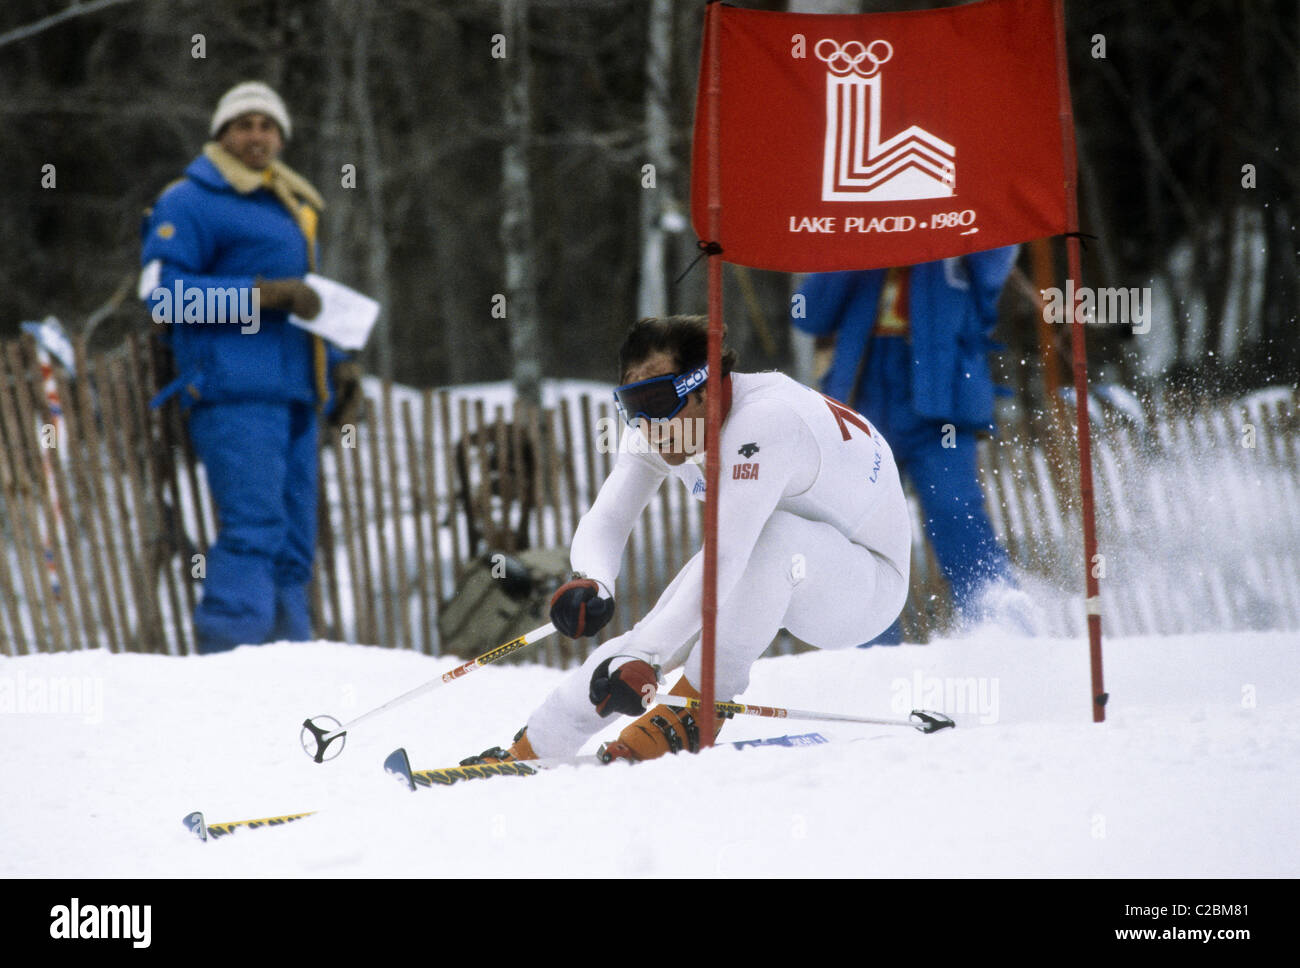 Phil Mahre (USA) competing in the Giant Slalom at the 1980 Olympic Winter Games, Lake Placid, New York - Stock Image